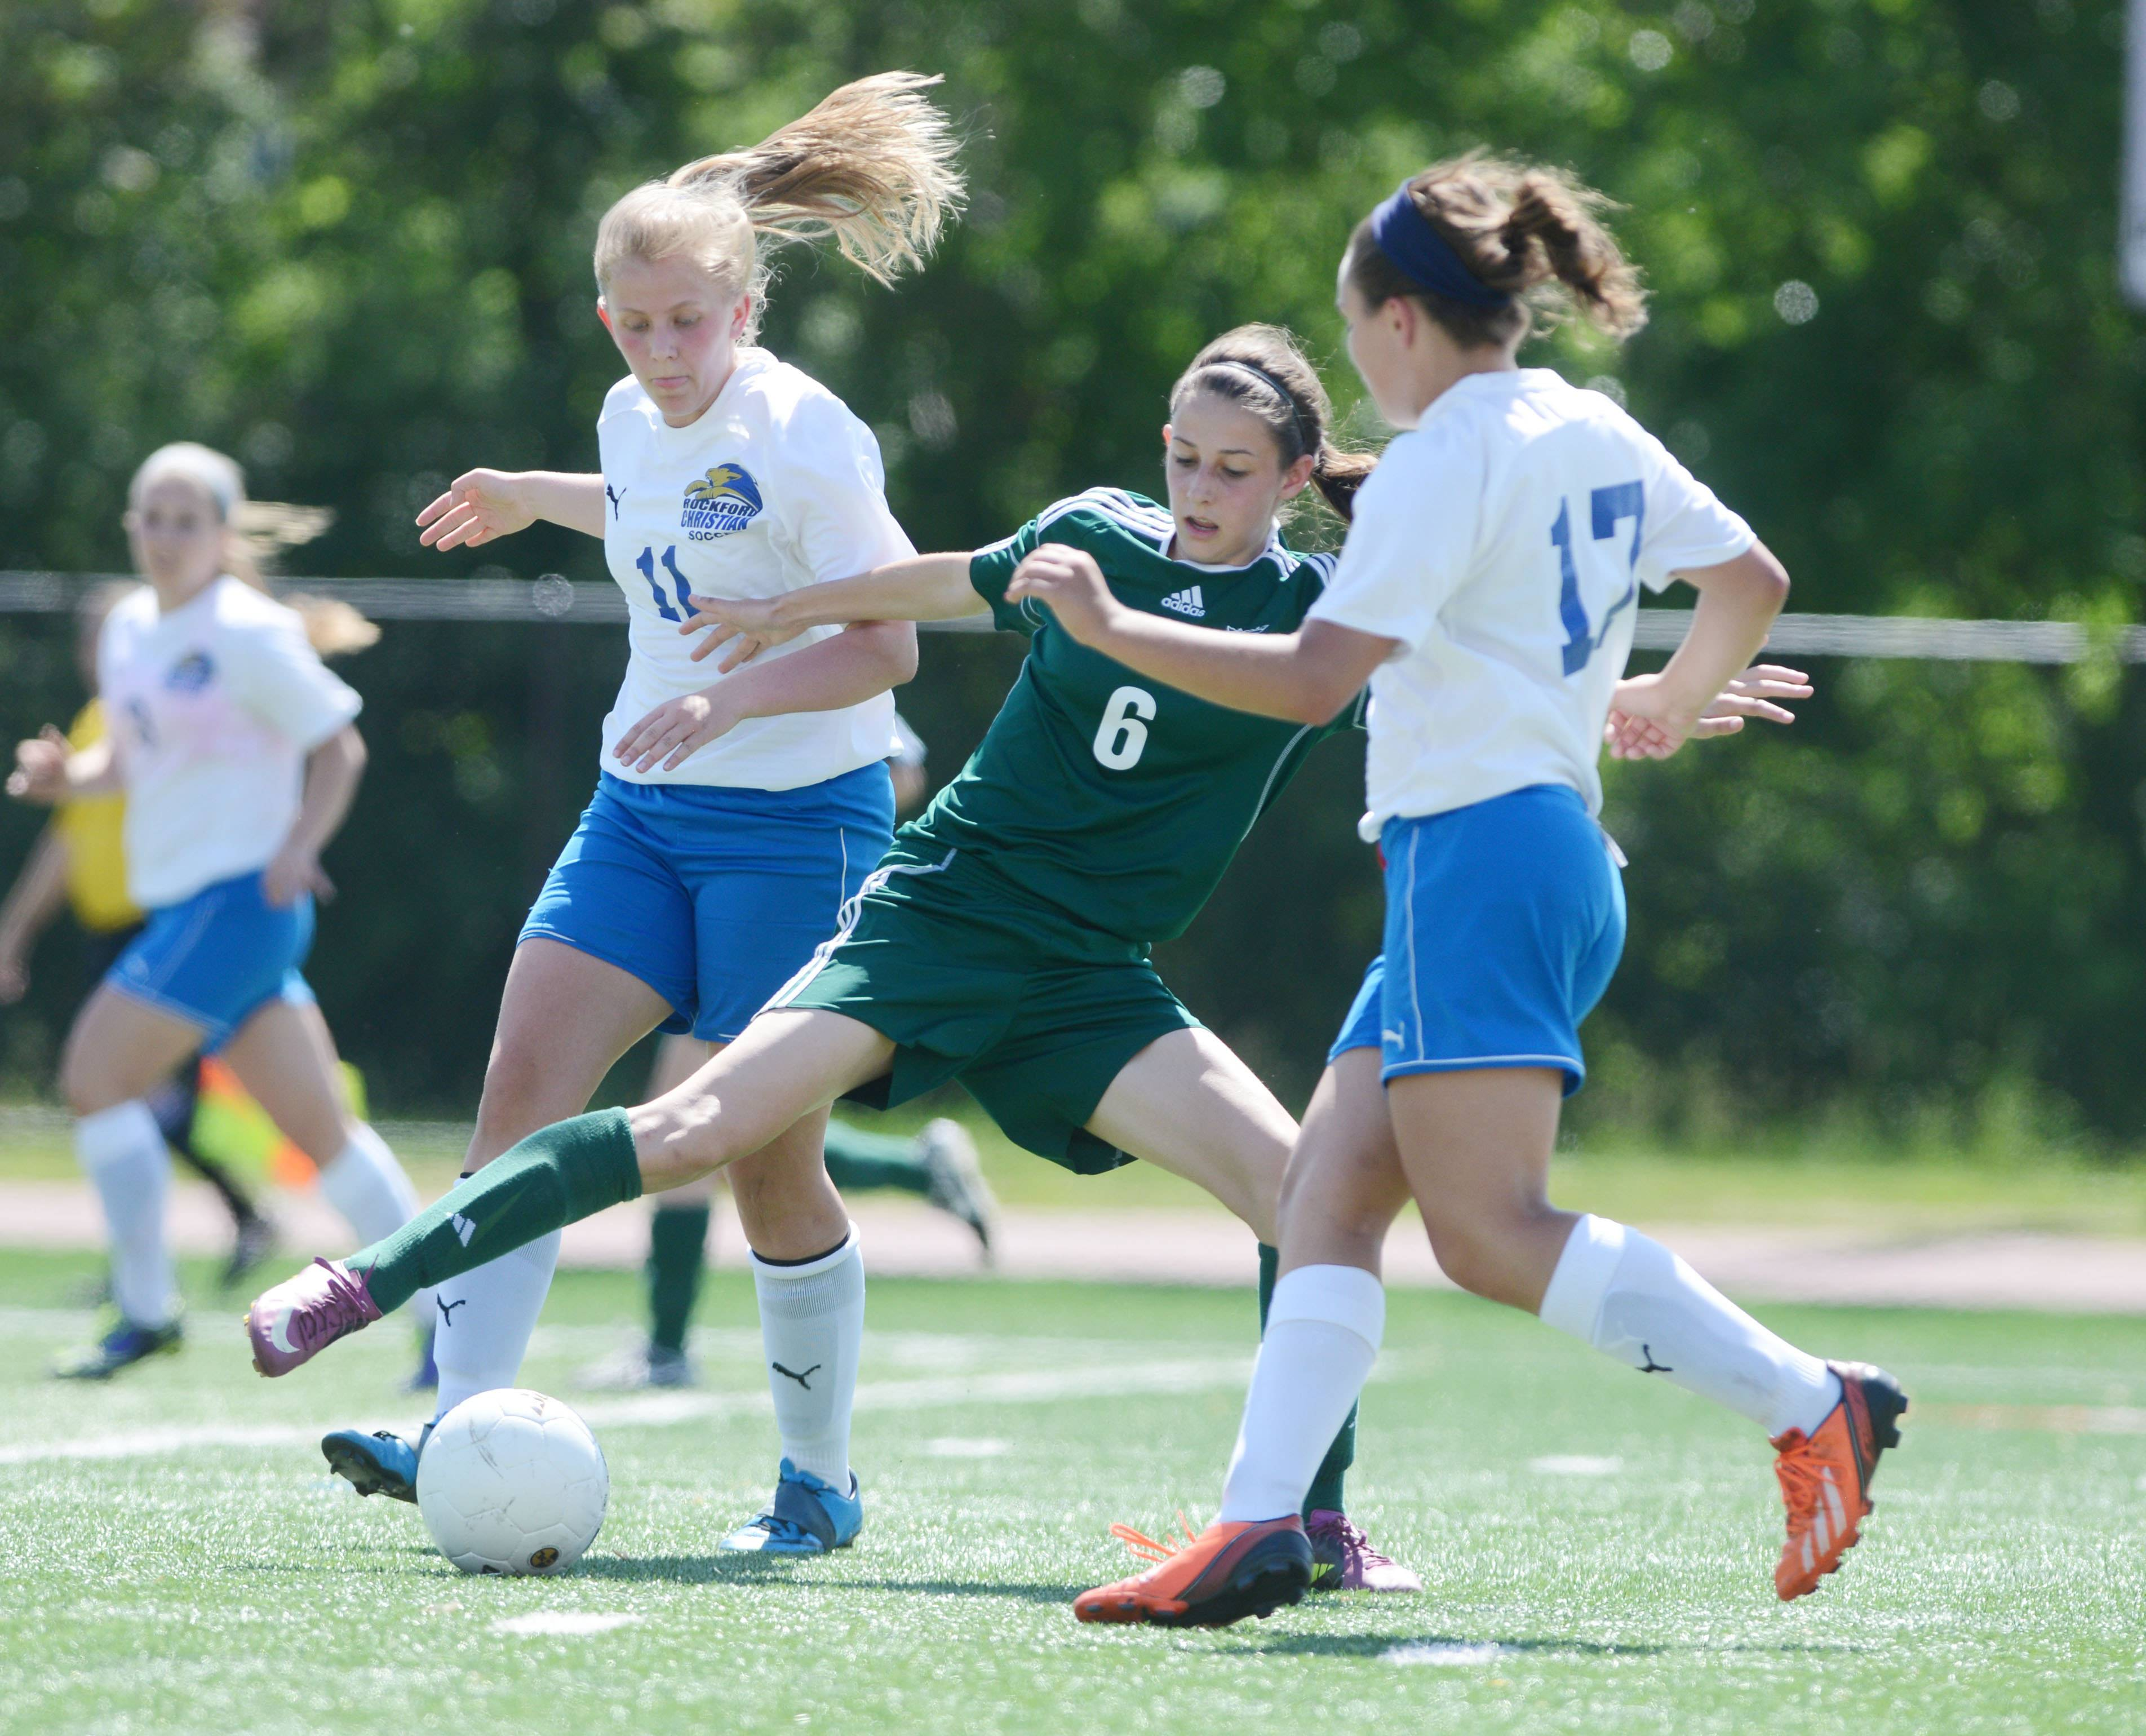 Chelsea Gnan of St. Edward moves the ball between two Rockford Christian defenders during the Class 1A state girls soccer third place game in Naperville Saturday.